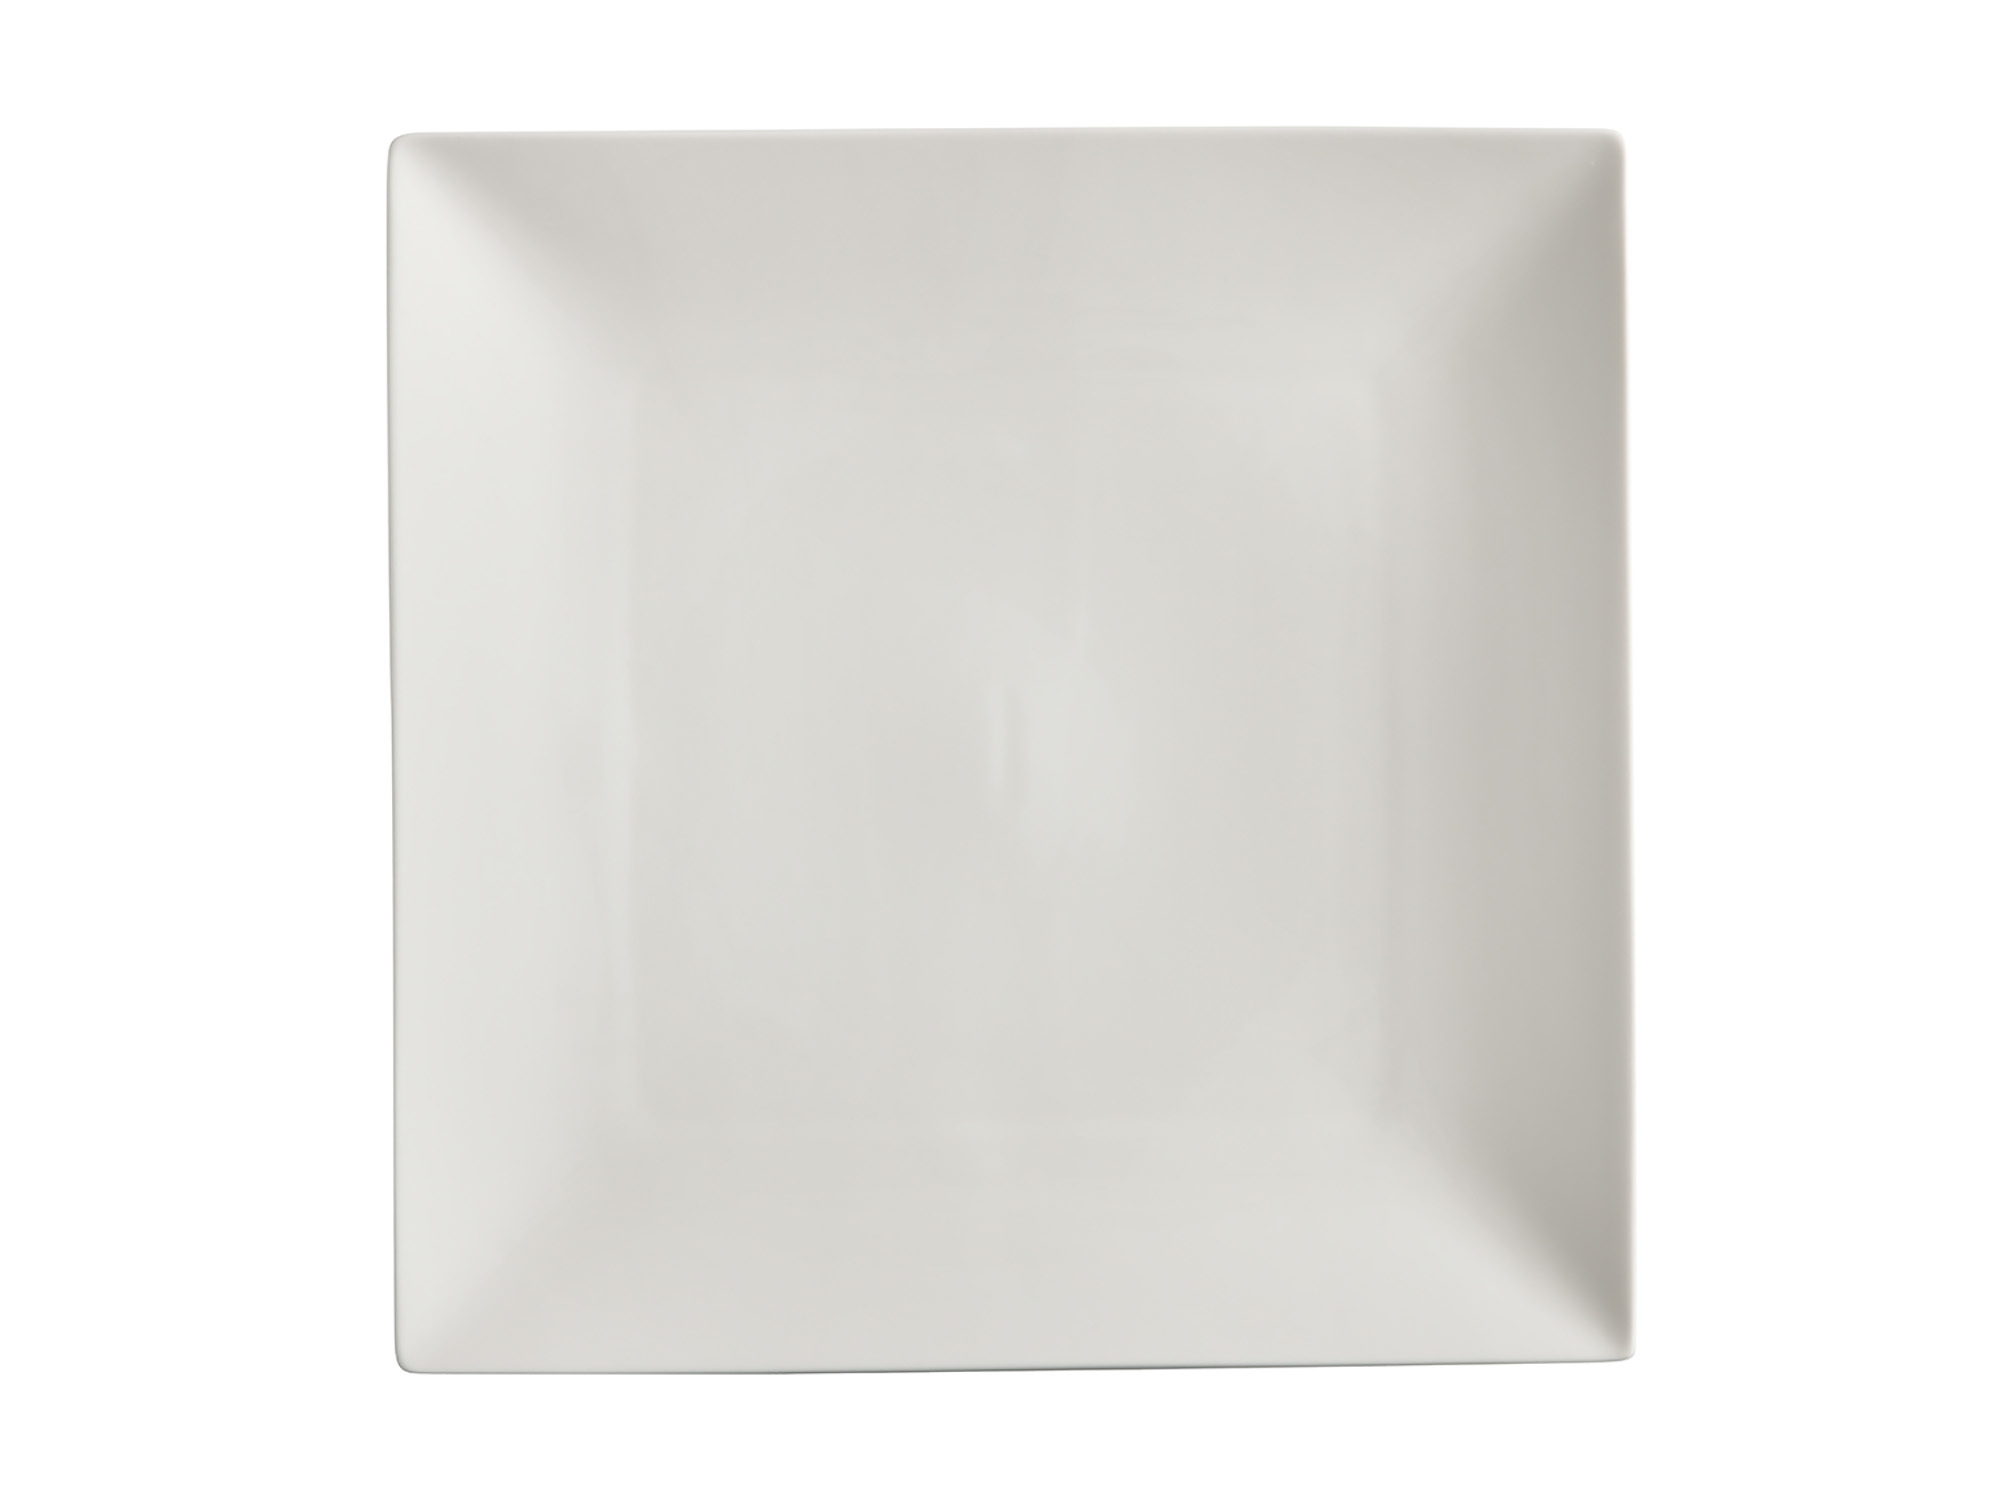 Maxwell & Williams White Basics Linear 15Cm Square Plate